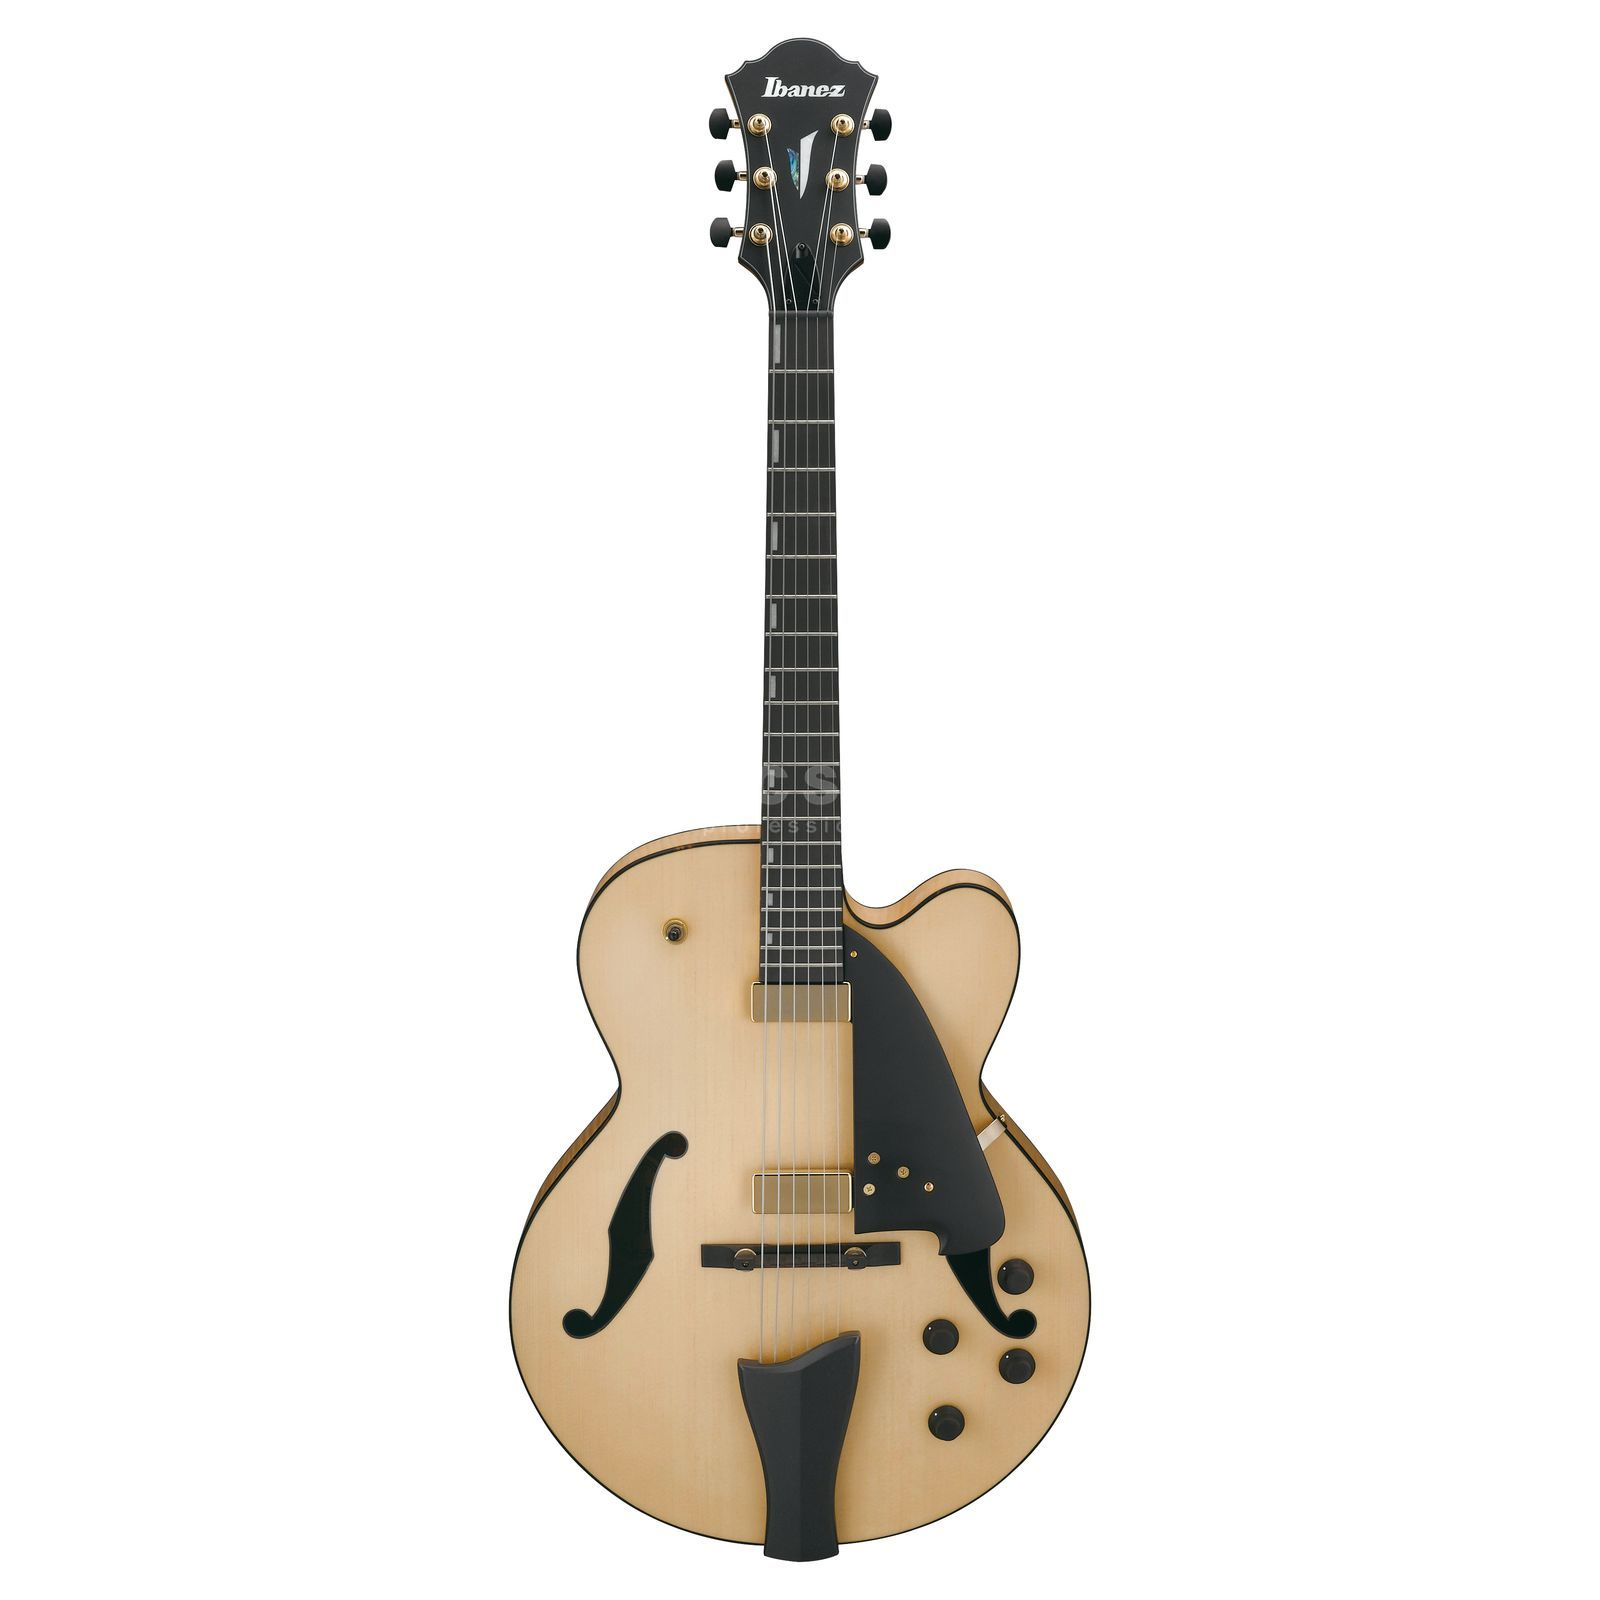 Ibanez Contemporary Archtop AFC95-NTF Natural Flat Imagen del producto